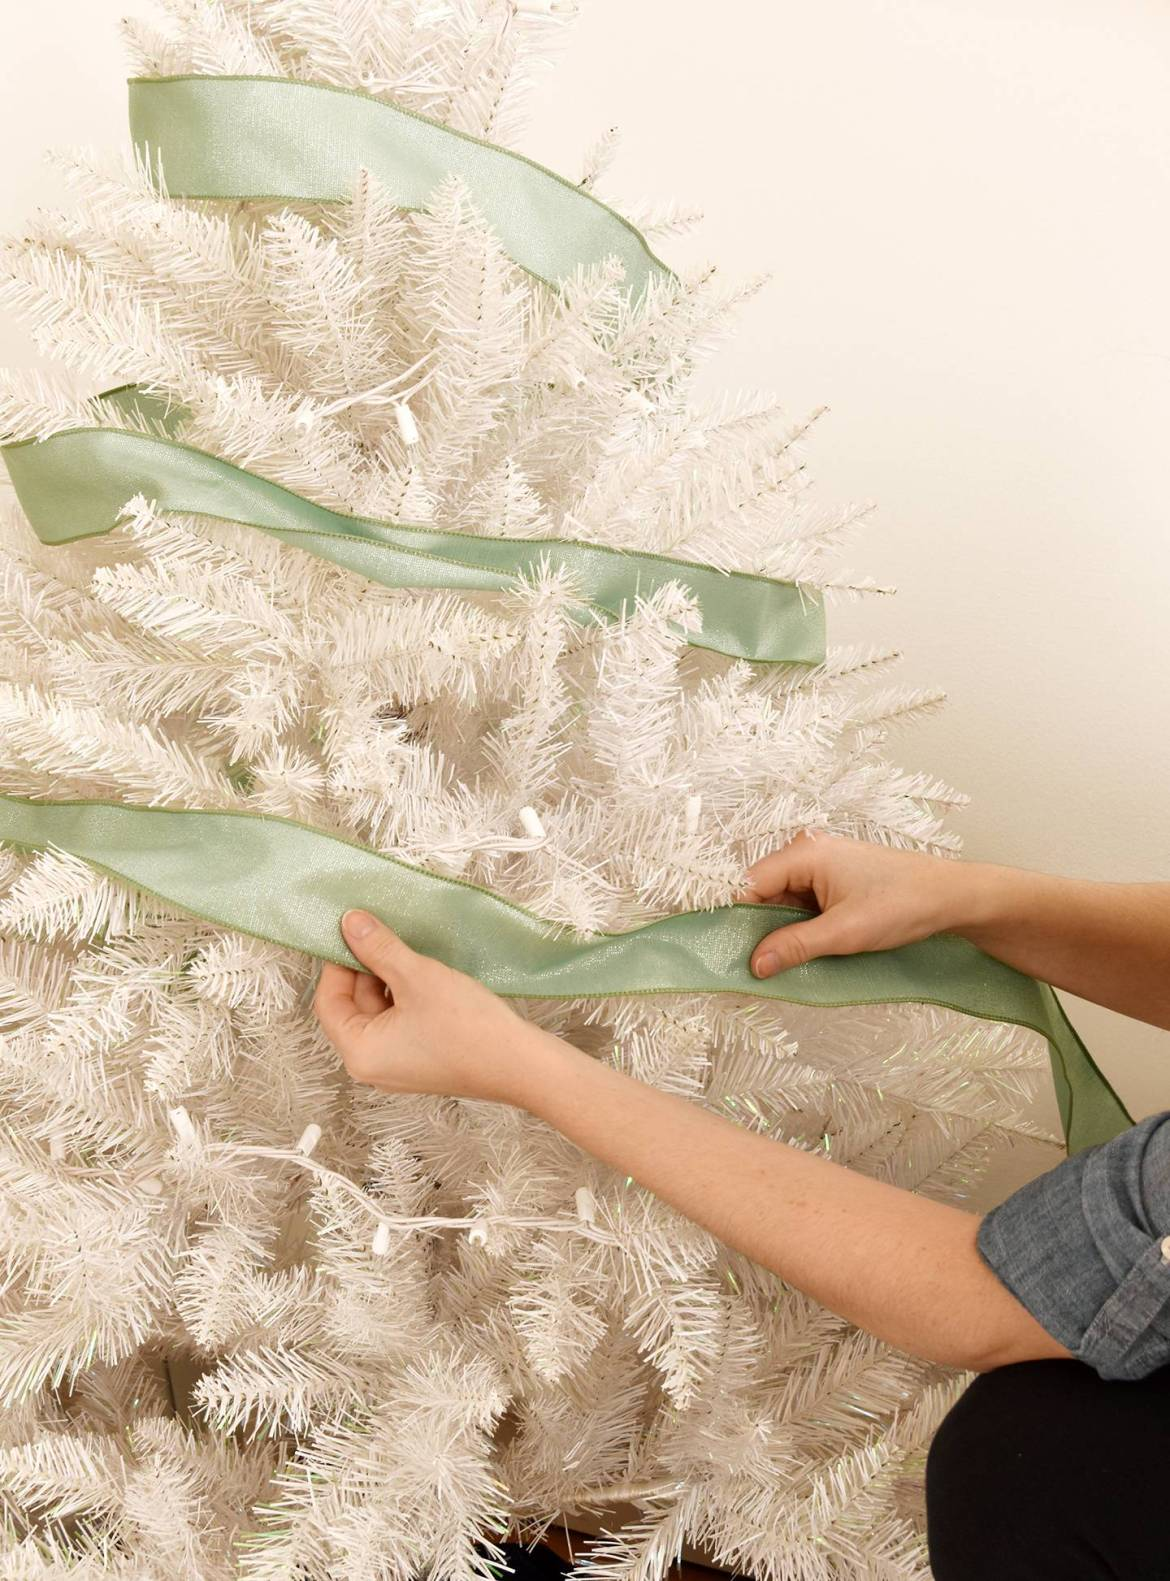 How To Decorate A Christmas Tree With Ribbon | Curbly #christmas #holiday #ribbon #nontraditional #unique